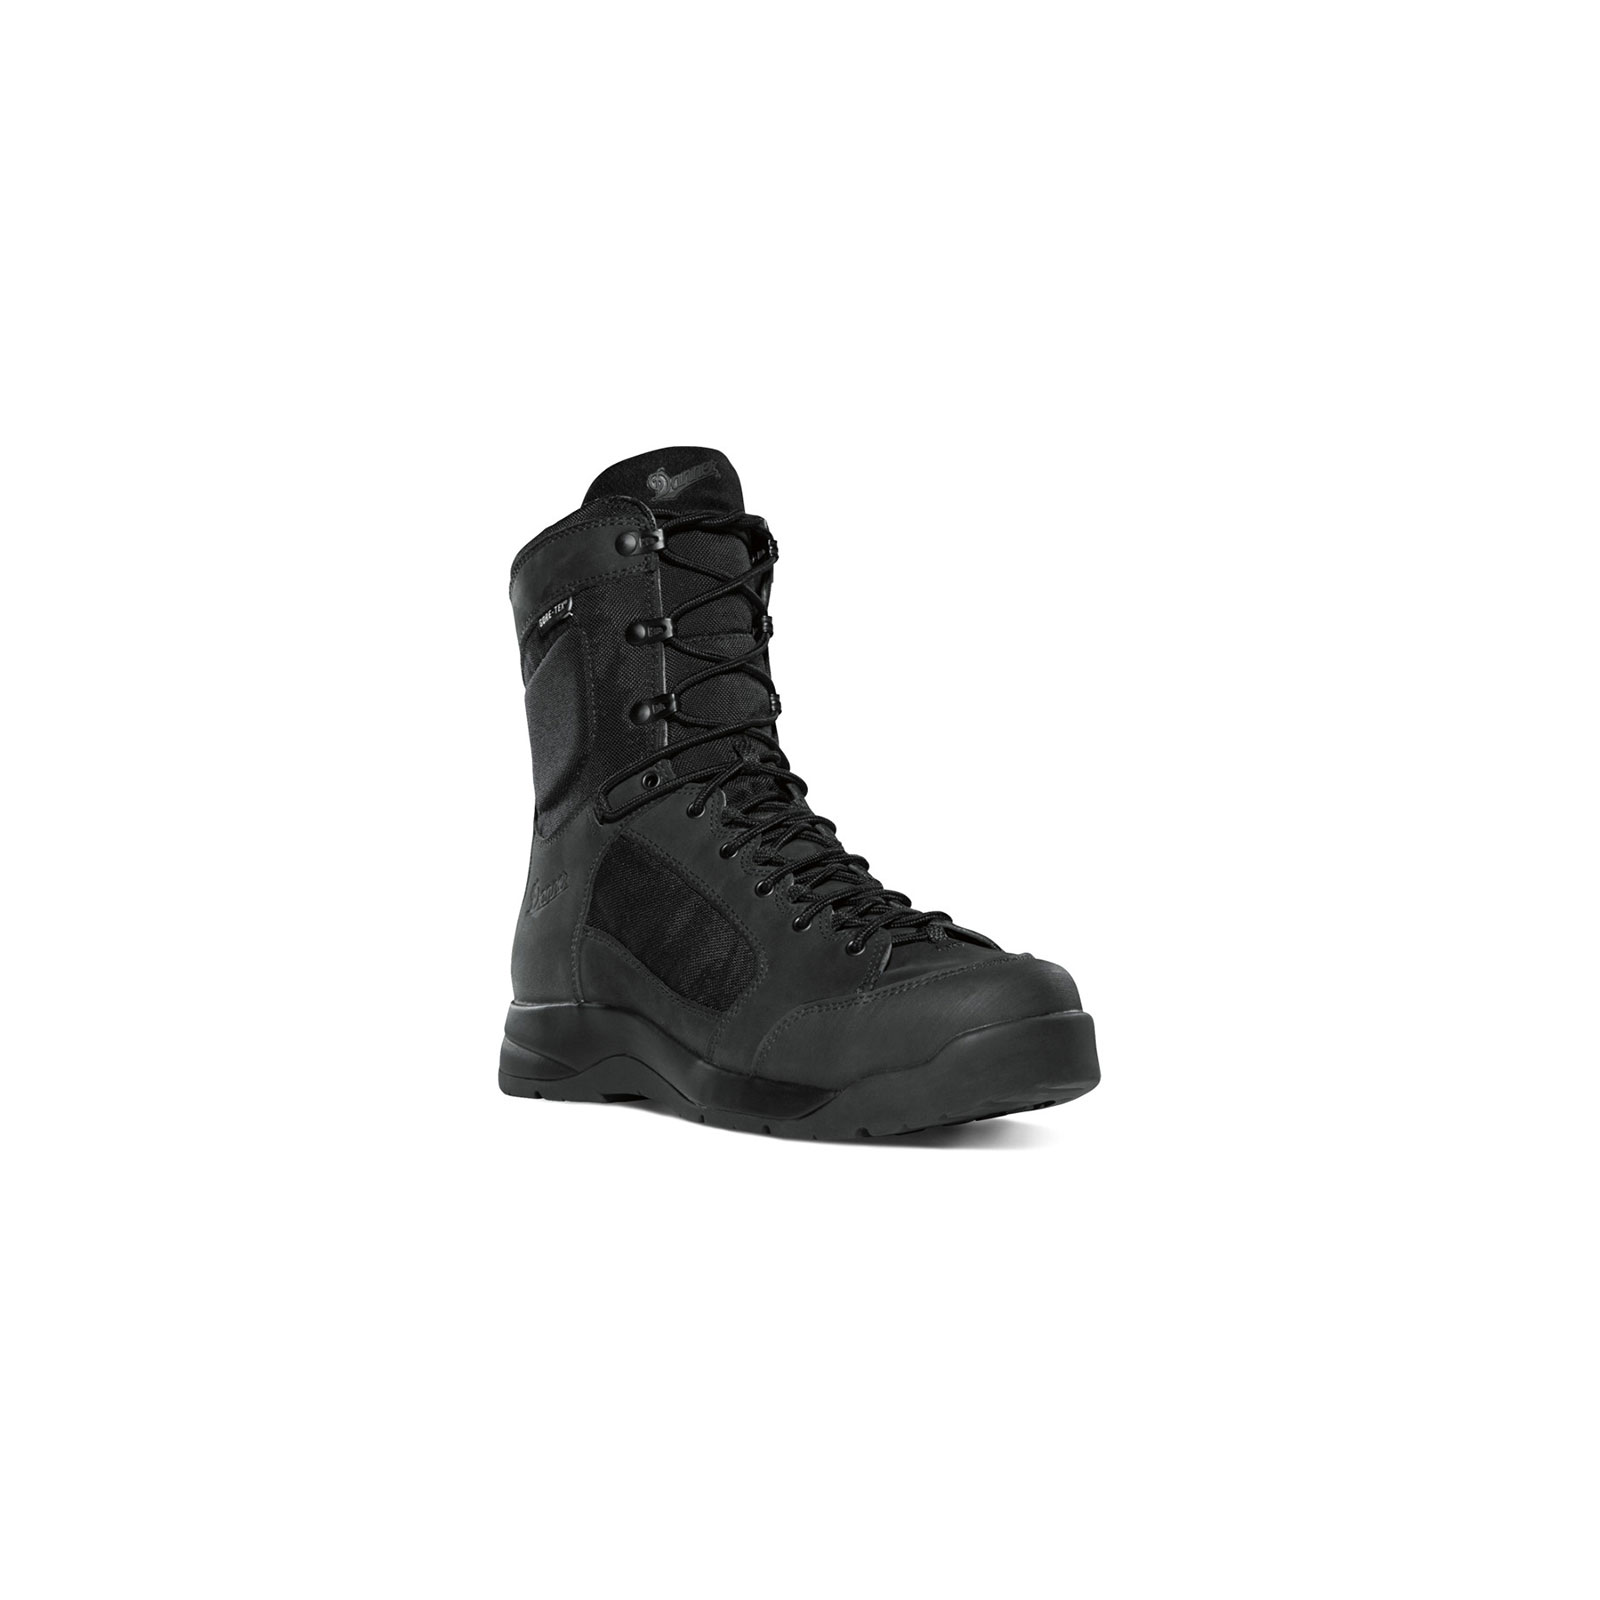 Danner Mens Danner Flight Assault (DFA) GTX Black Duty Boots 15404 ...